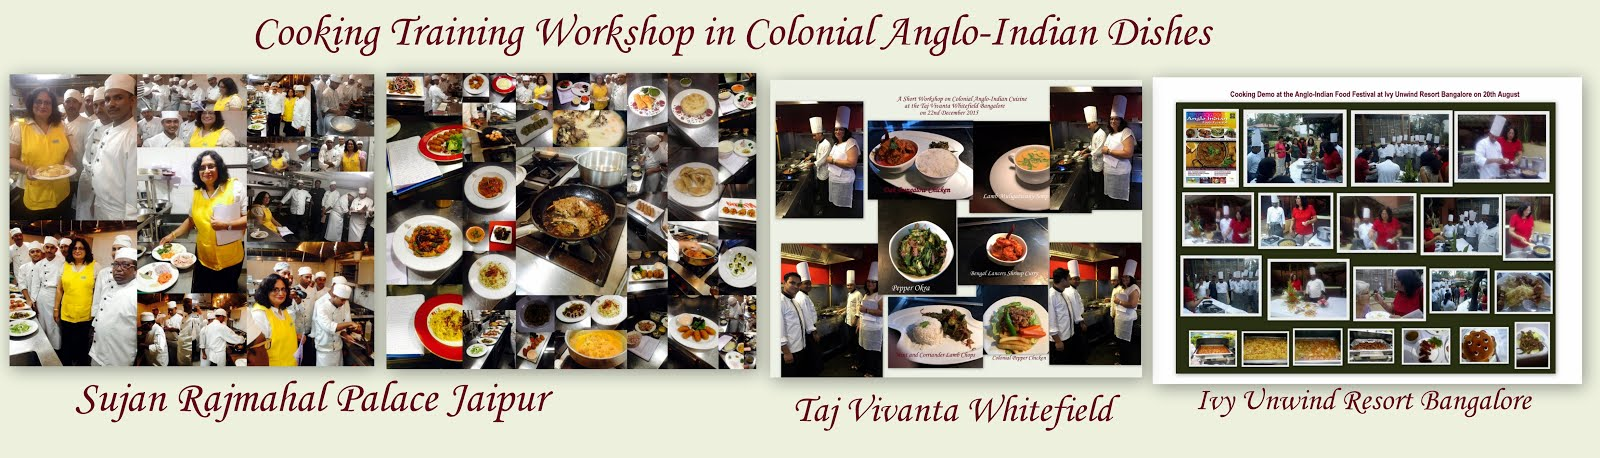 Cooking Training Workshops in Colonial Anglo-Indian Dishes